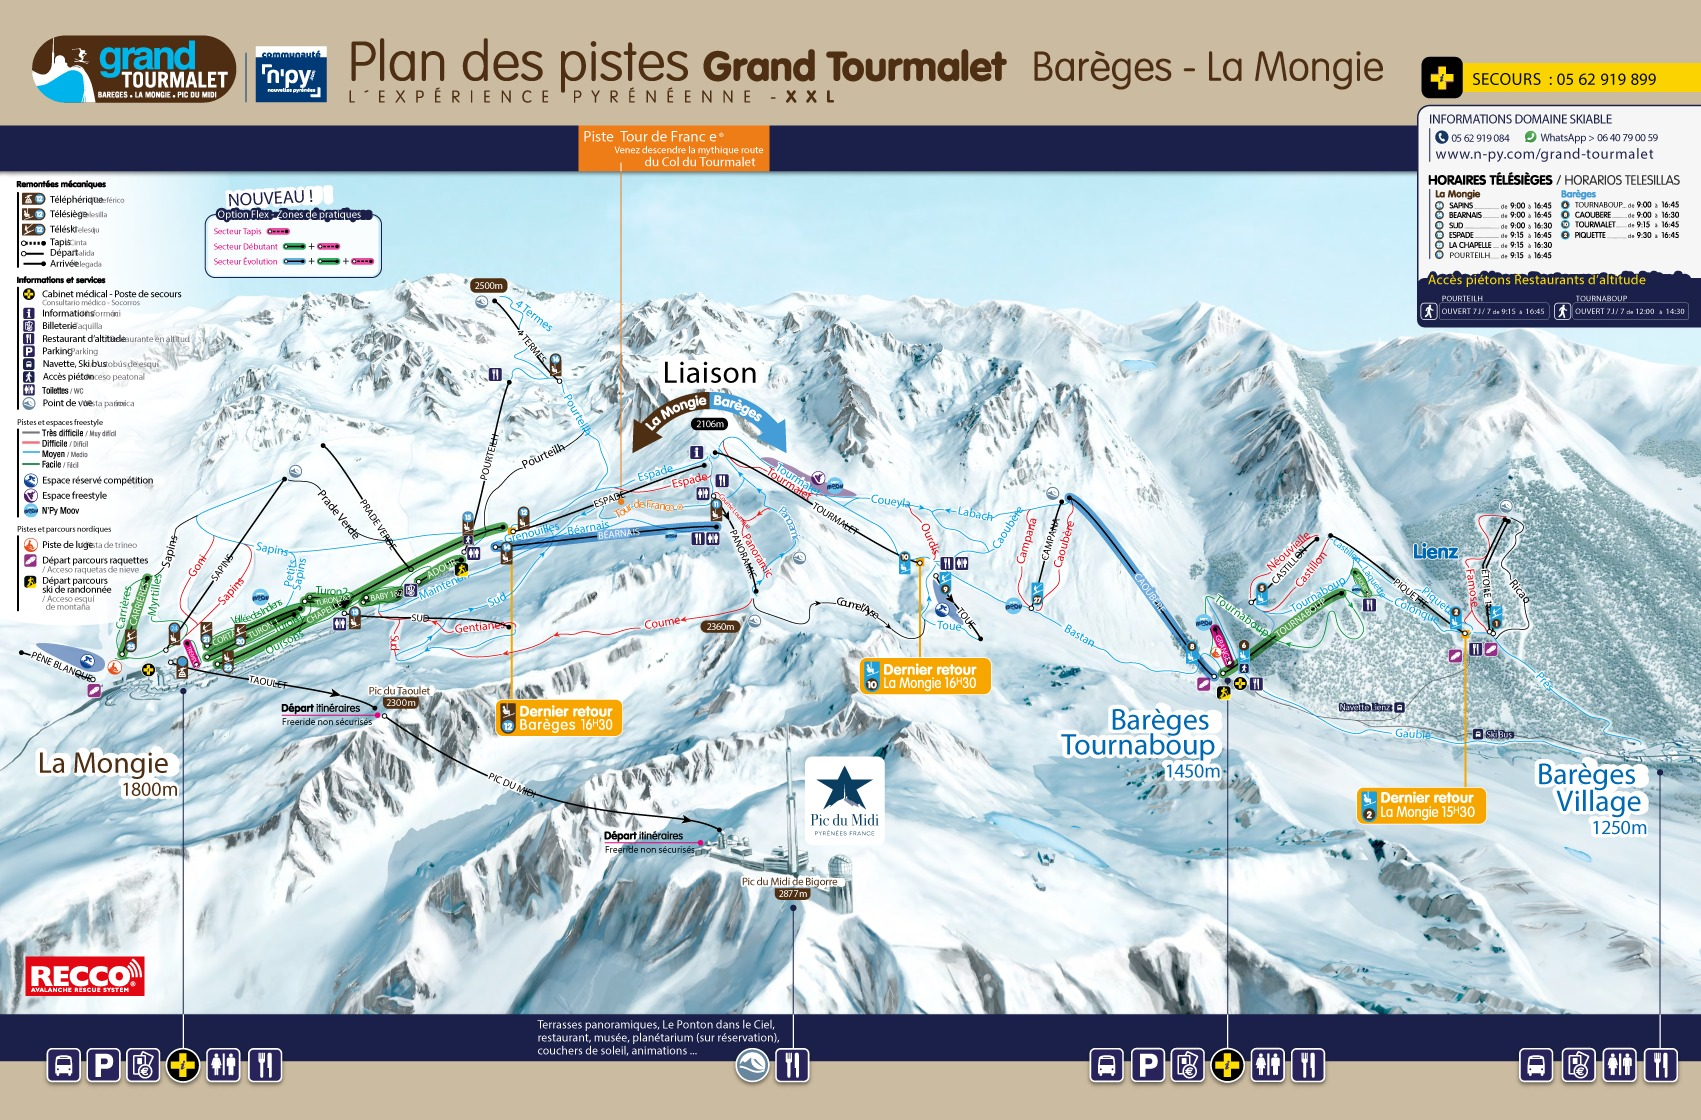 Grand Tourmalet-Bareges/La Mongie Piste / Trail Map